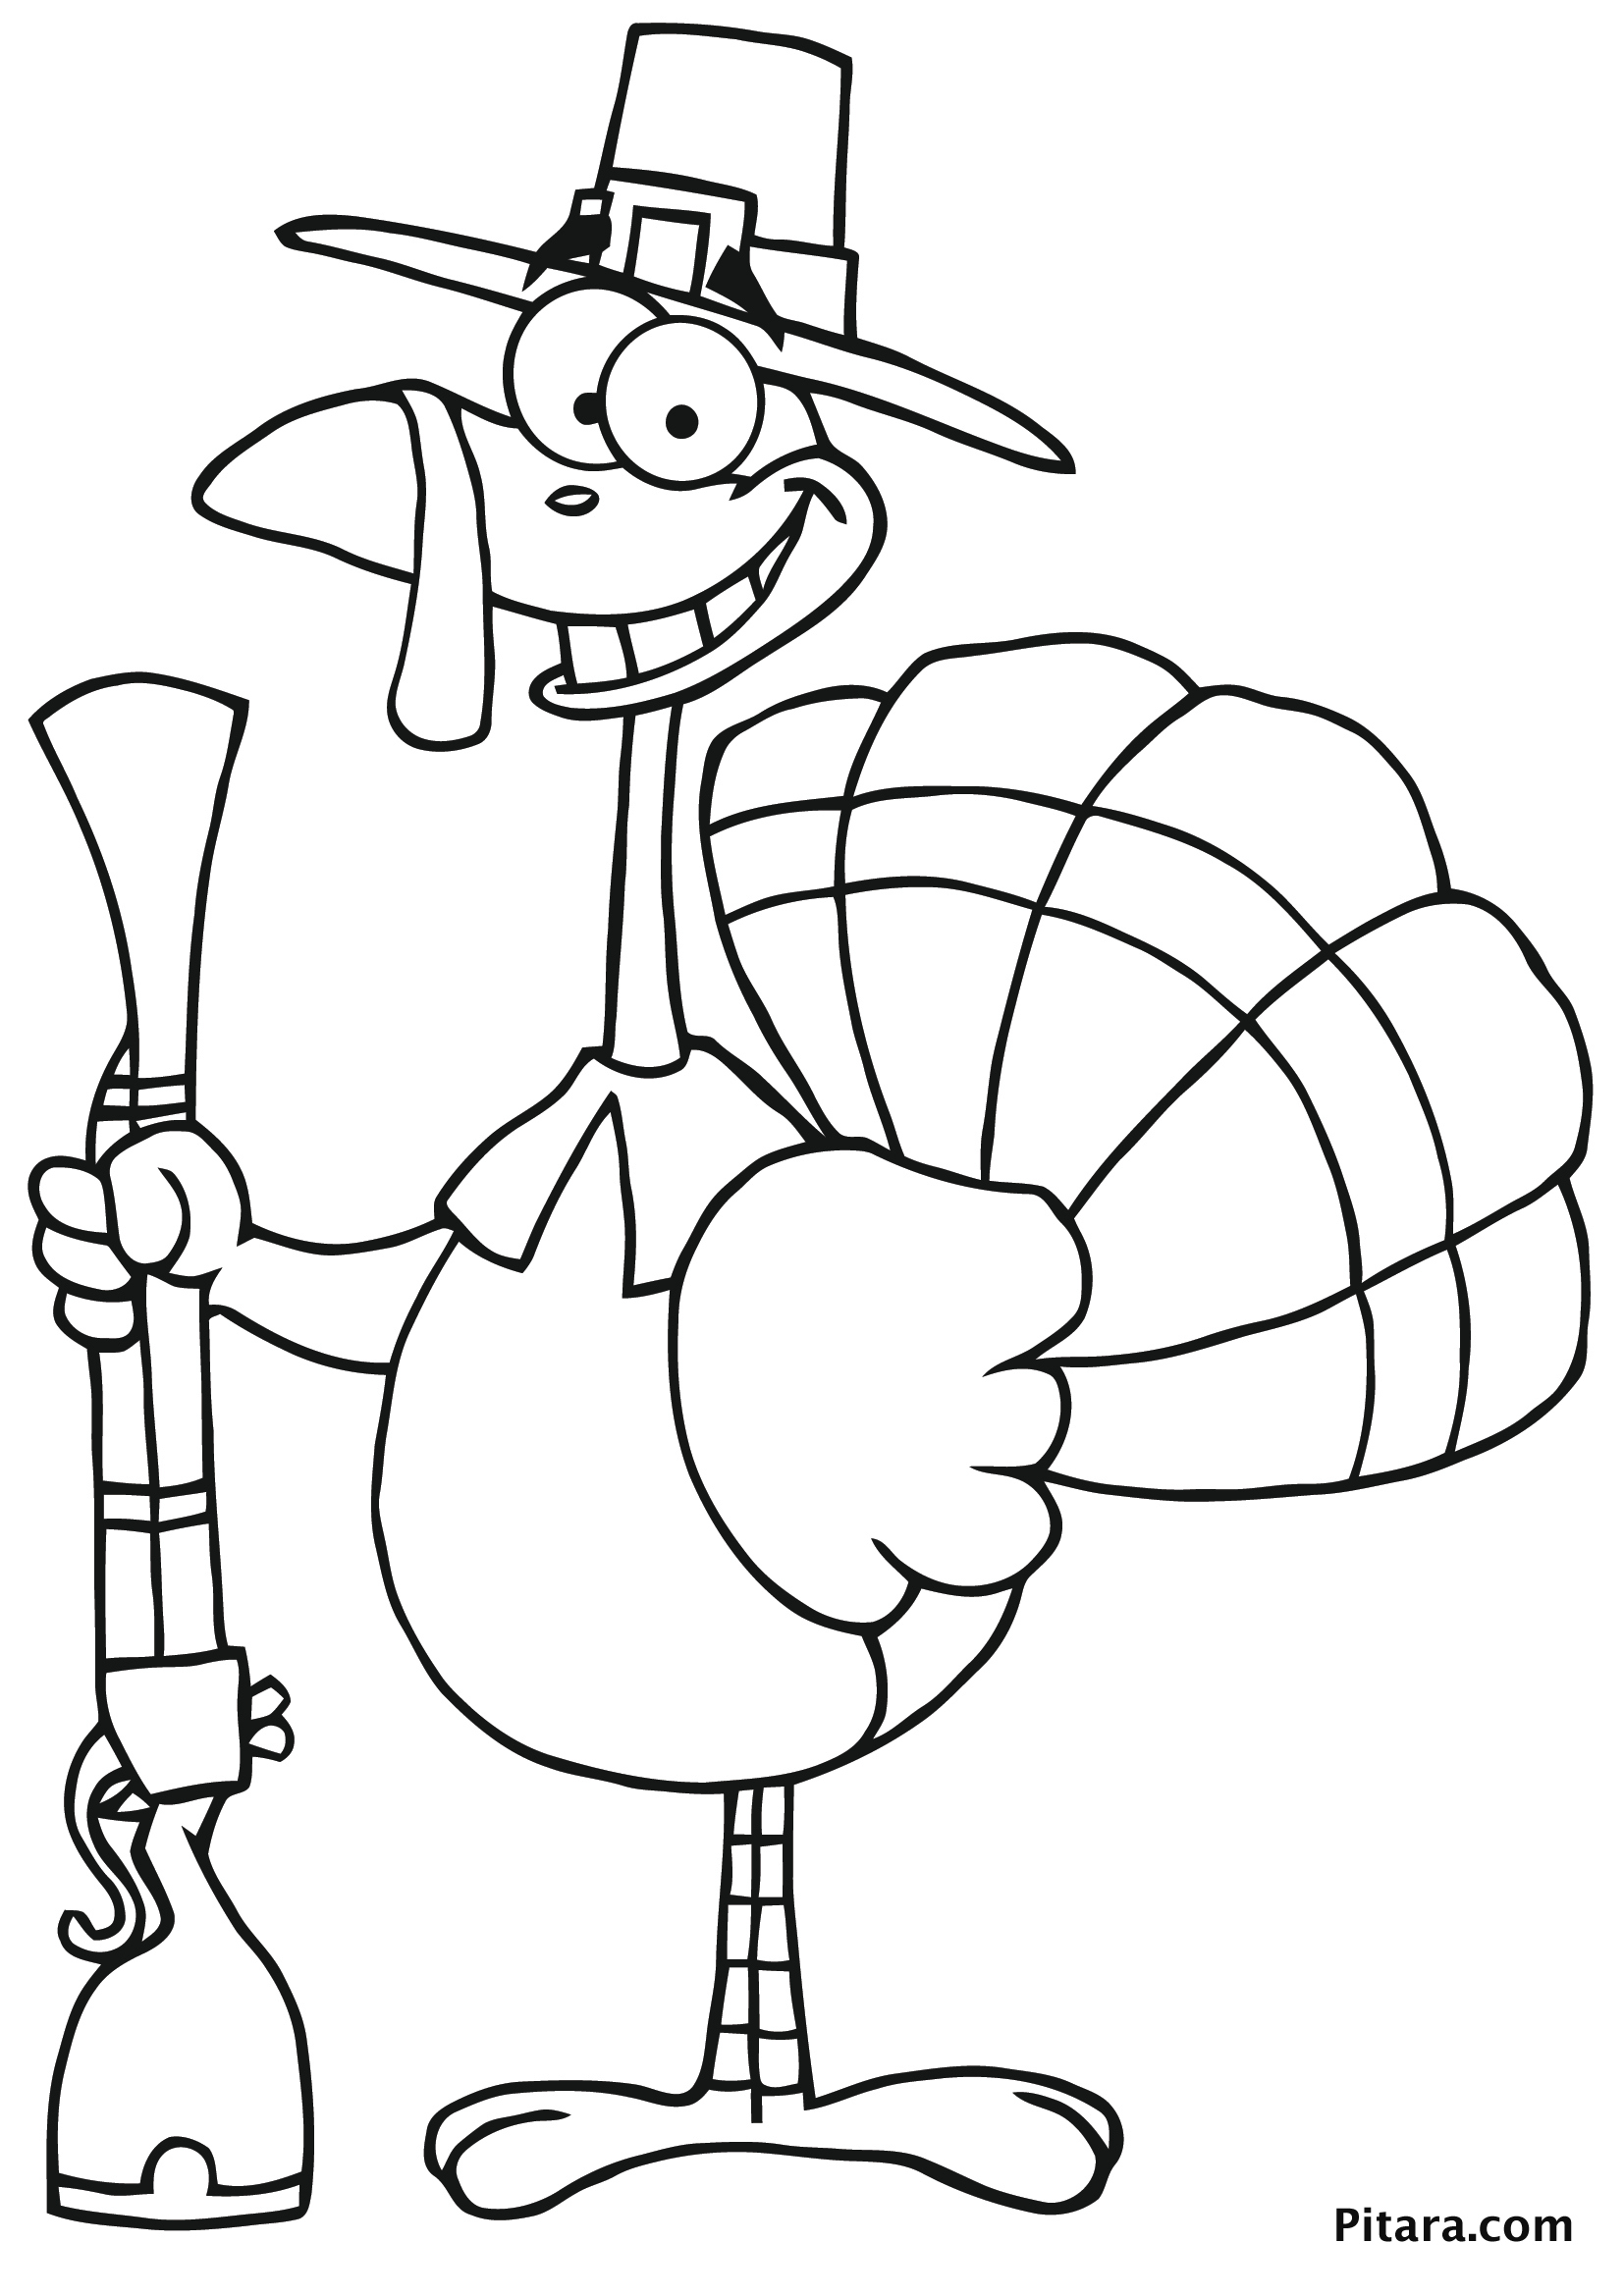 Hunter Turkey Colouring Page for Kids